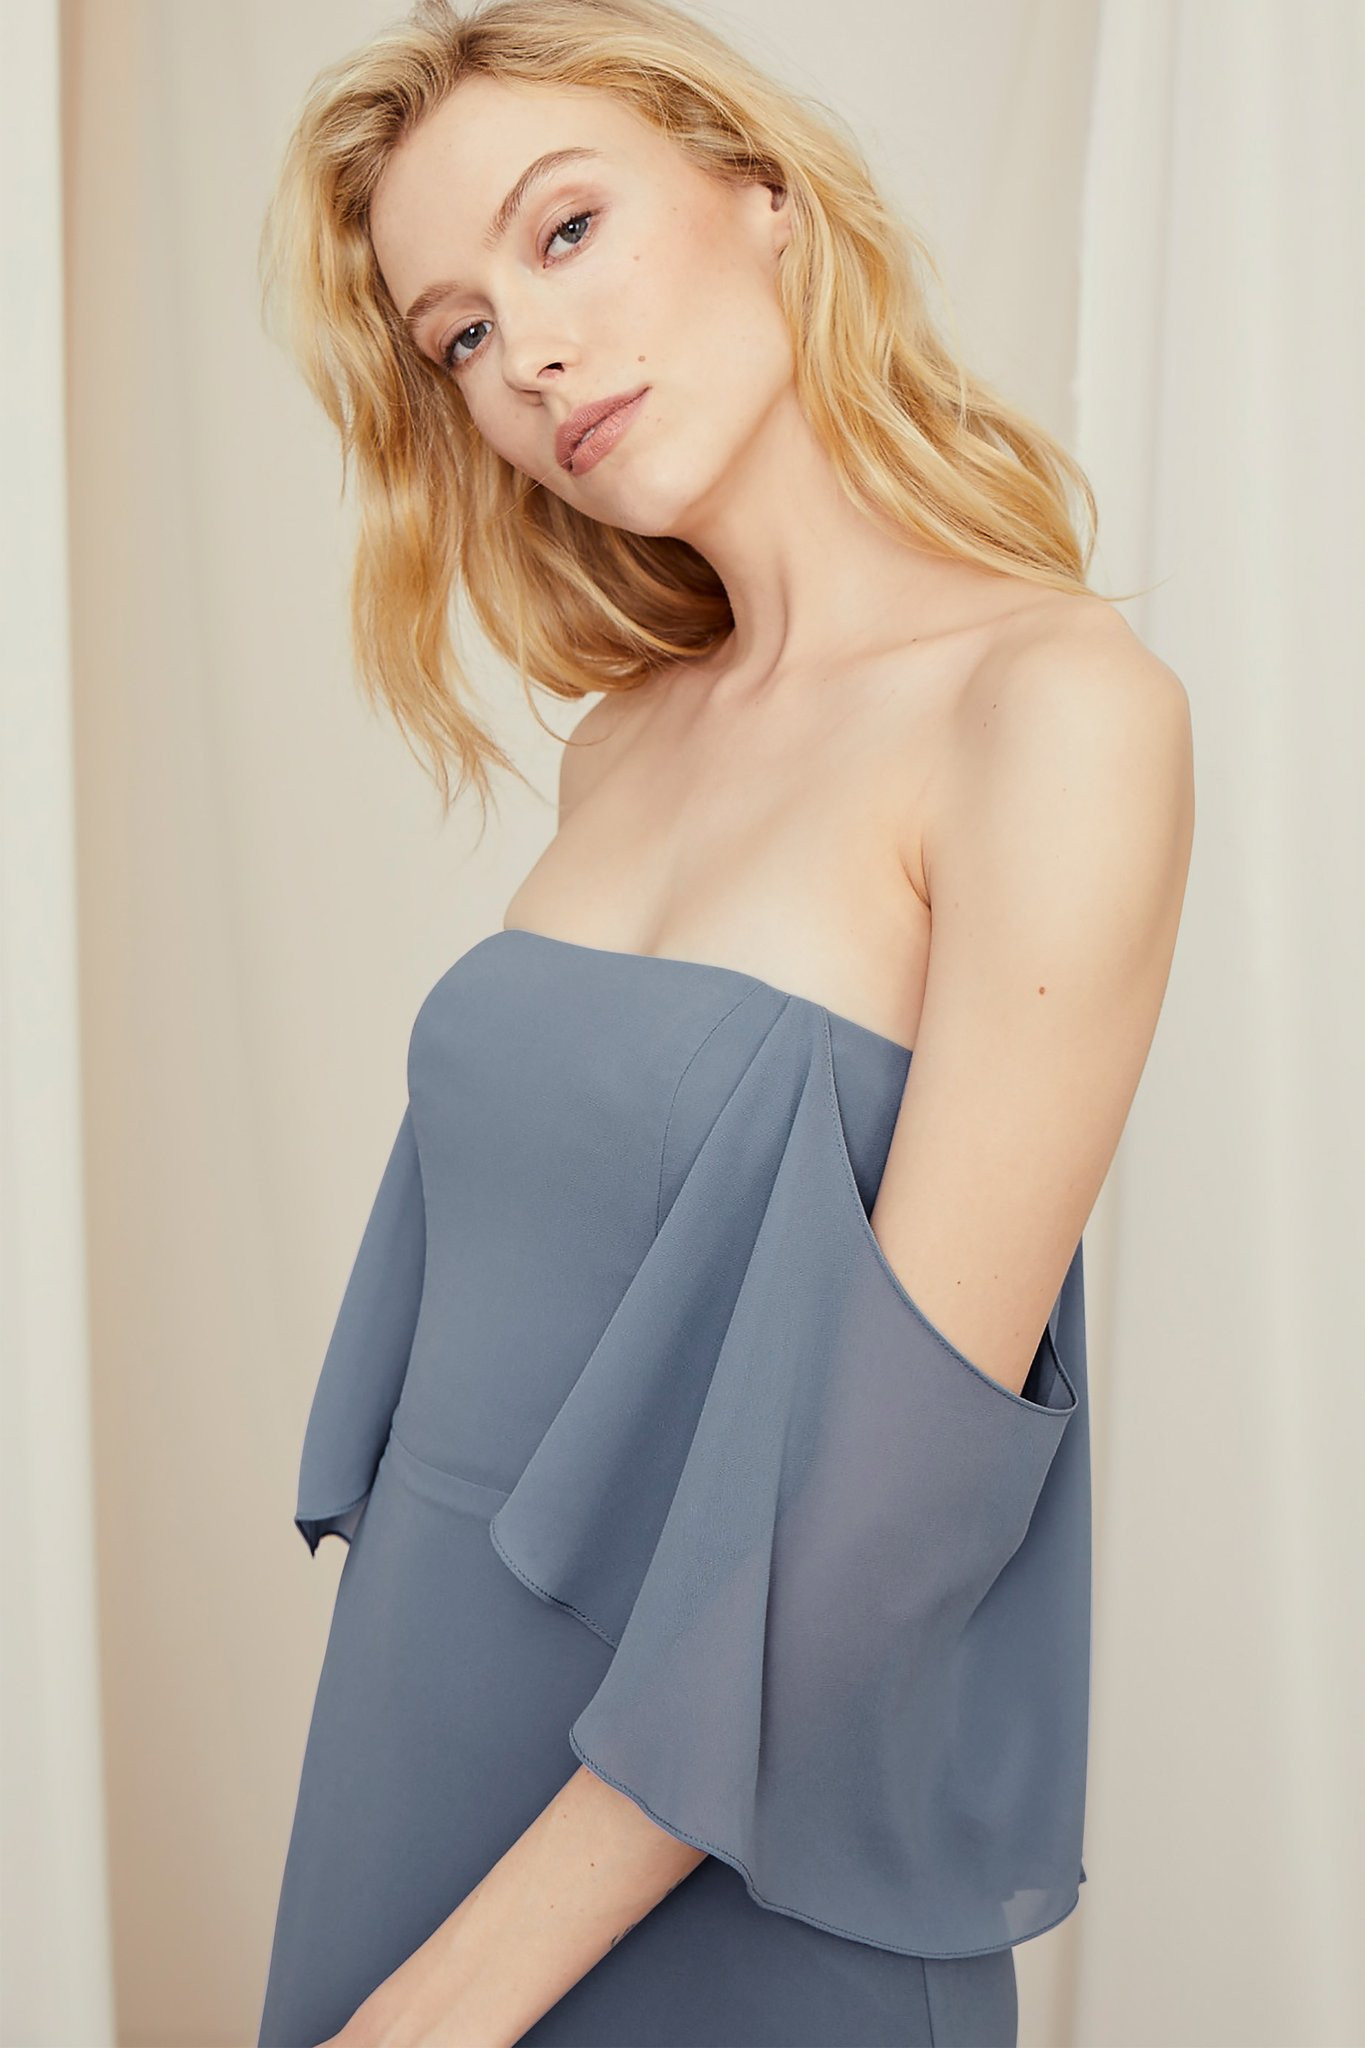 Strapless bridesmaids dress with drape sleeves in chiffon. Shown in Slate.